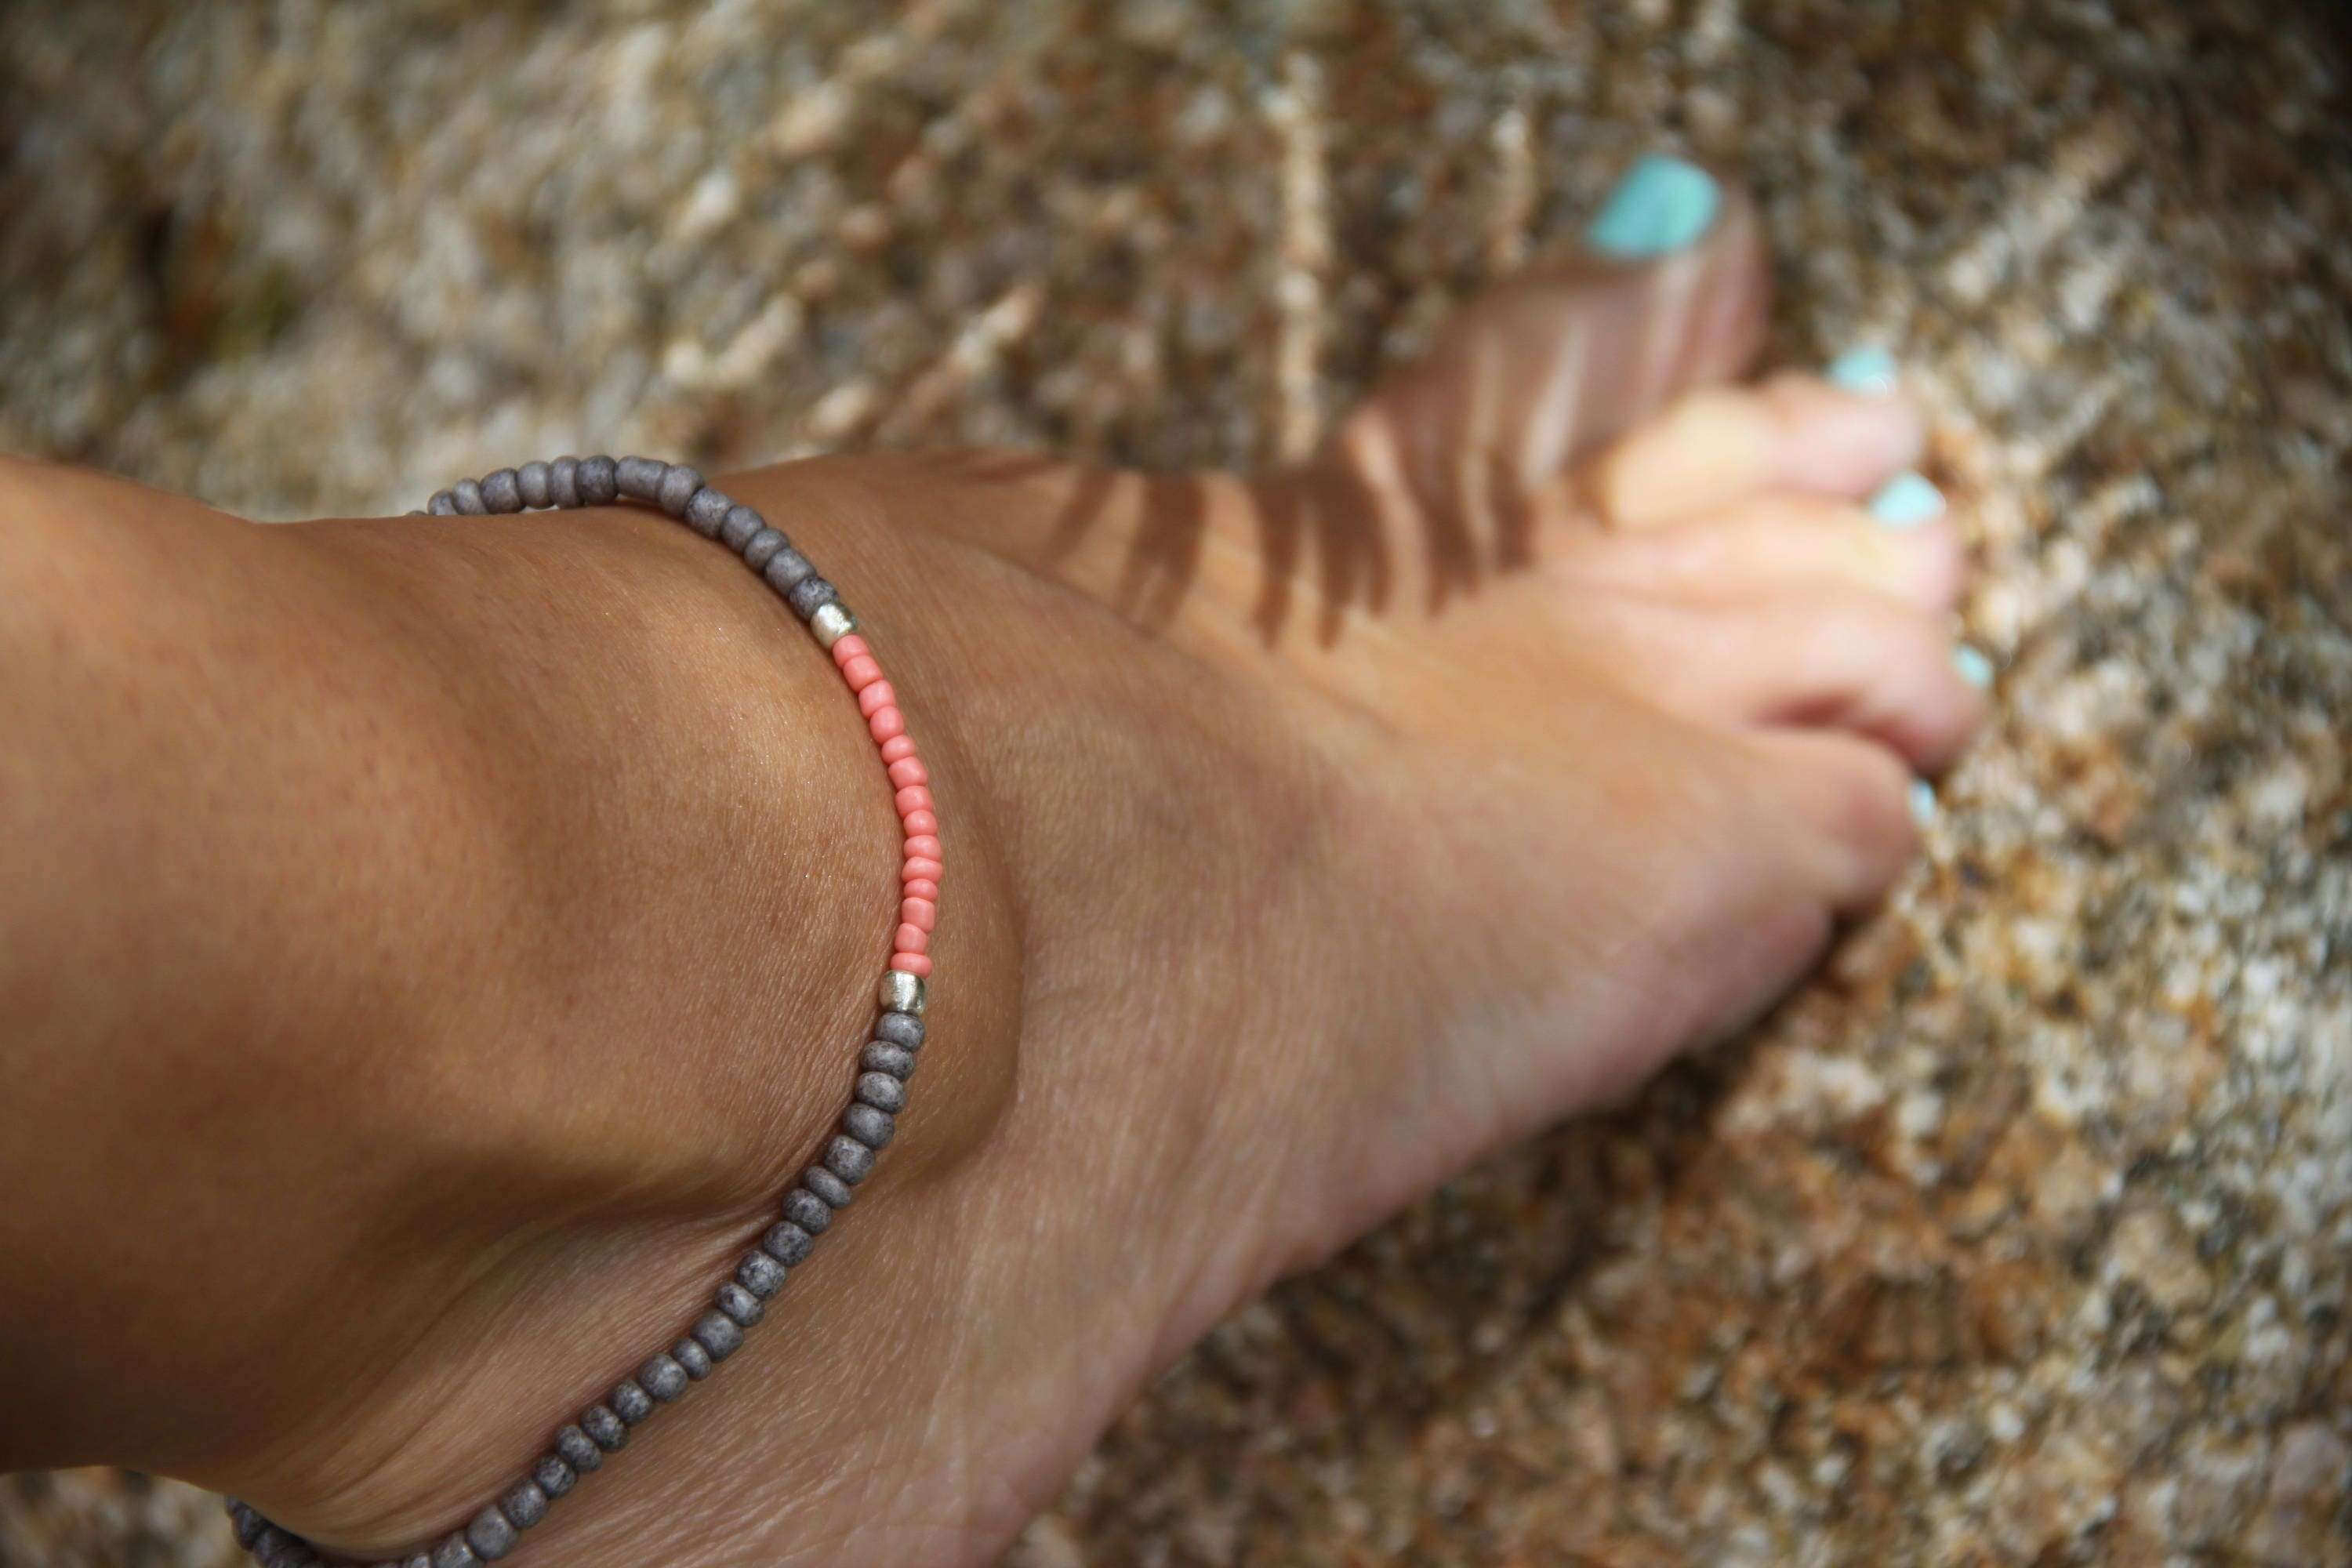 bracelet summer infinite wedding ankle gift ksvhs p gold fancy bridesmaid anklets jewelry bracelets infinity beach jewellery anklet love